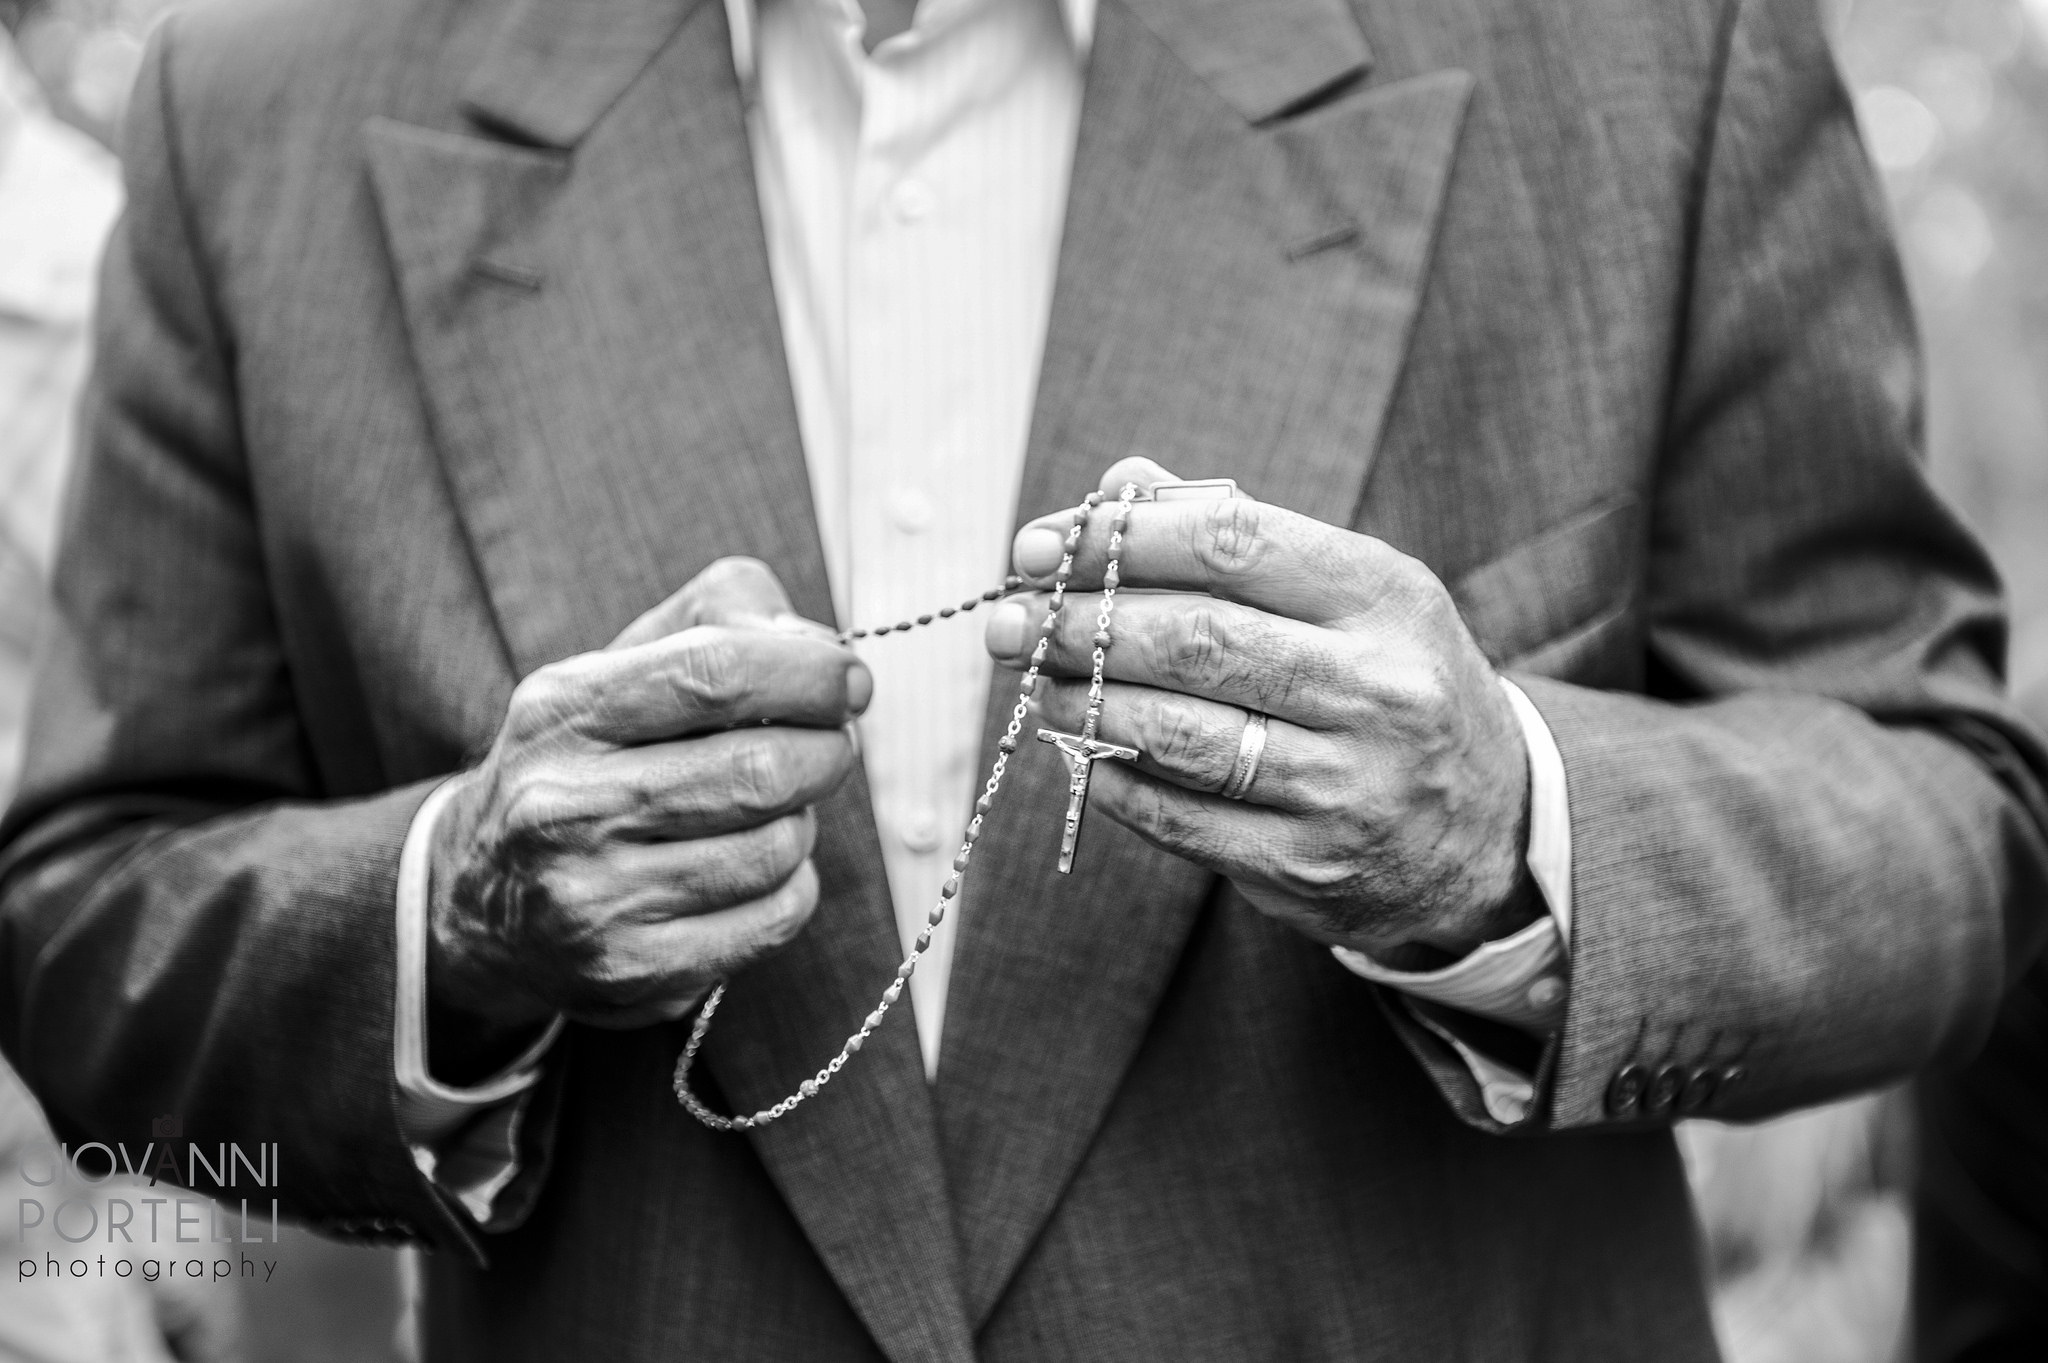 Man WIth Rosary